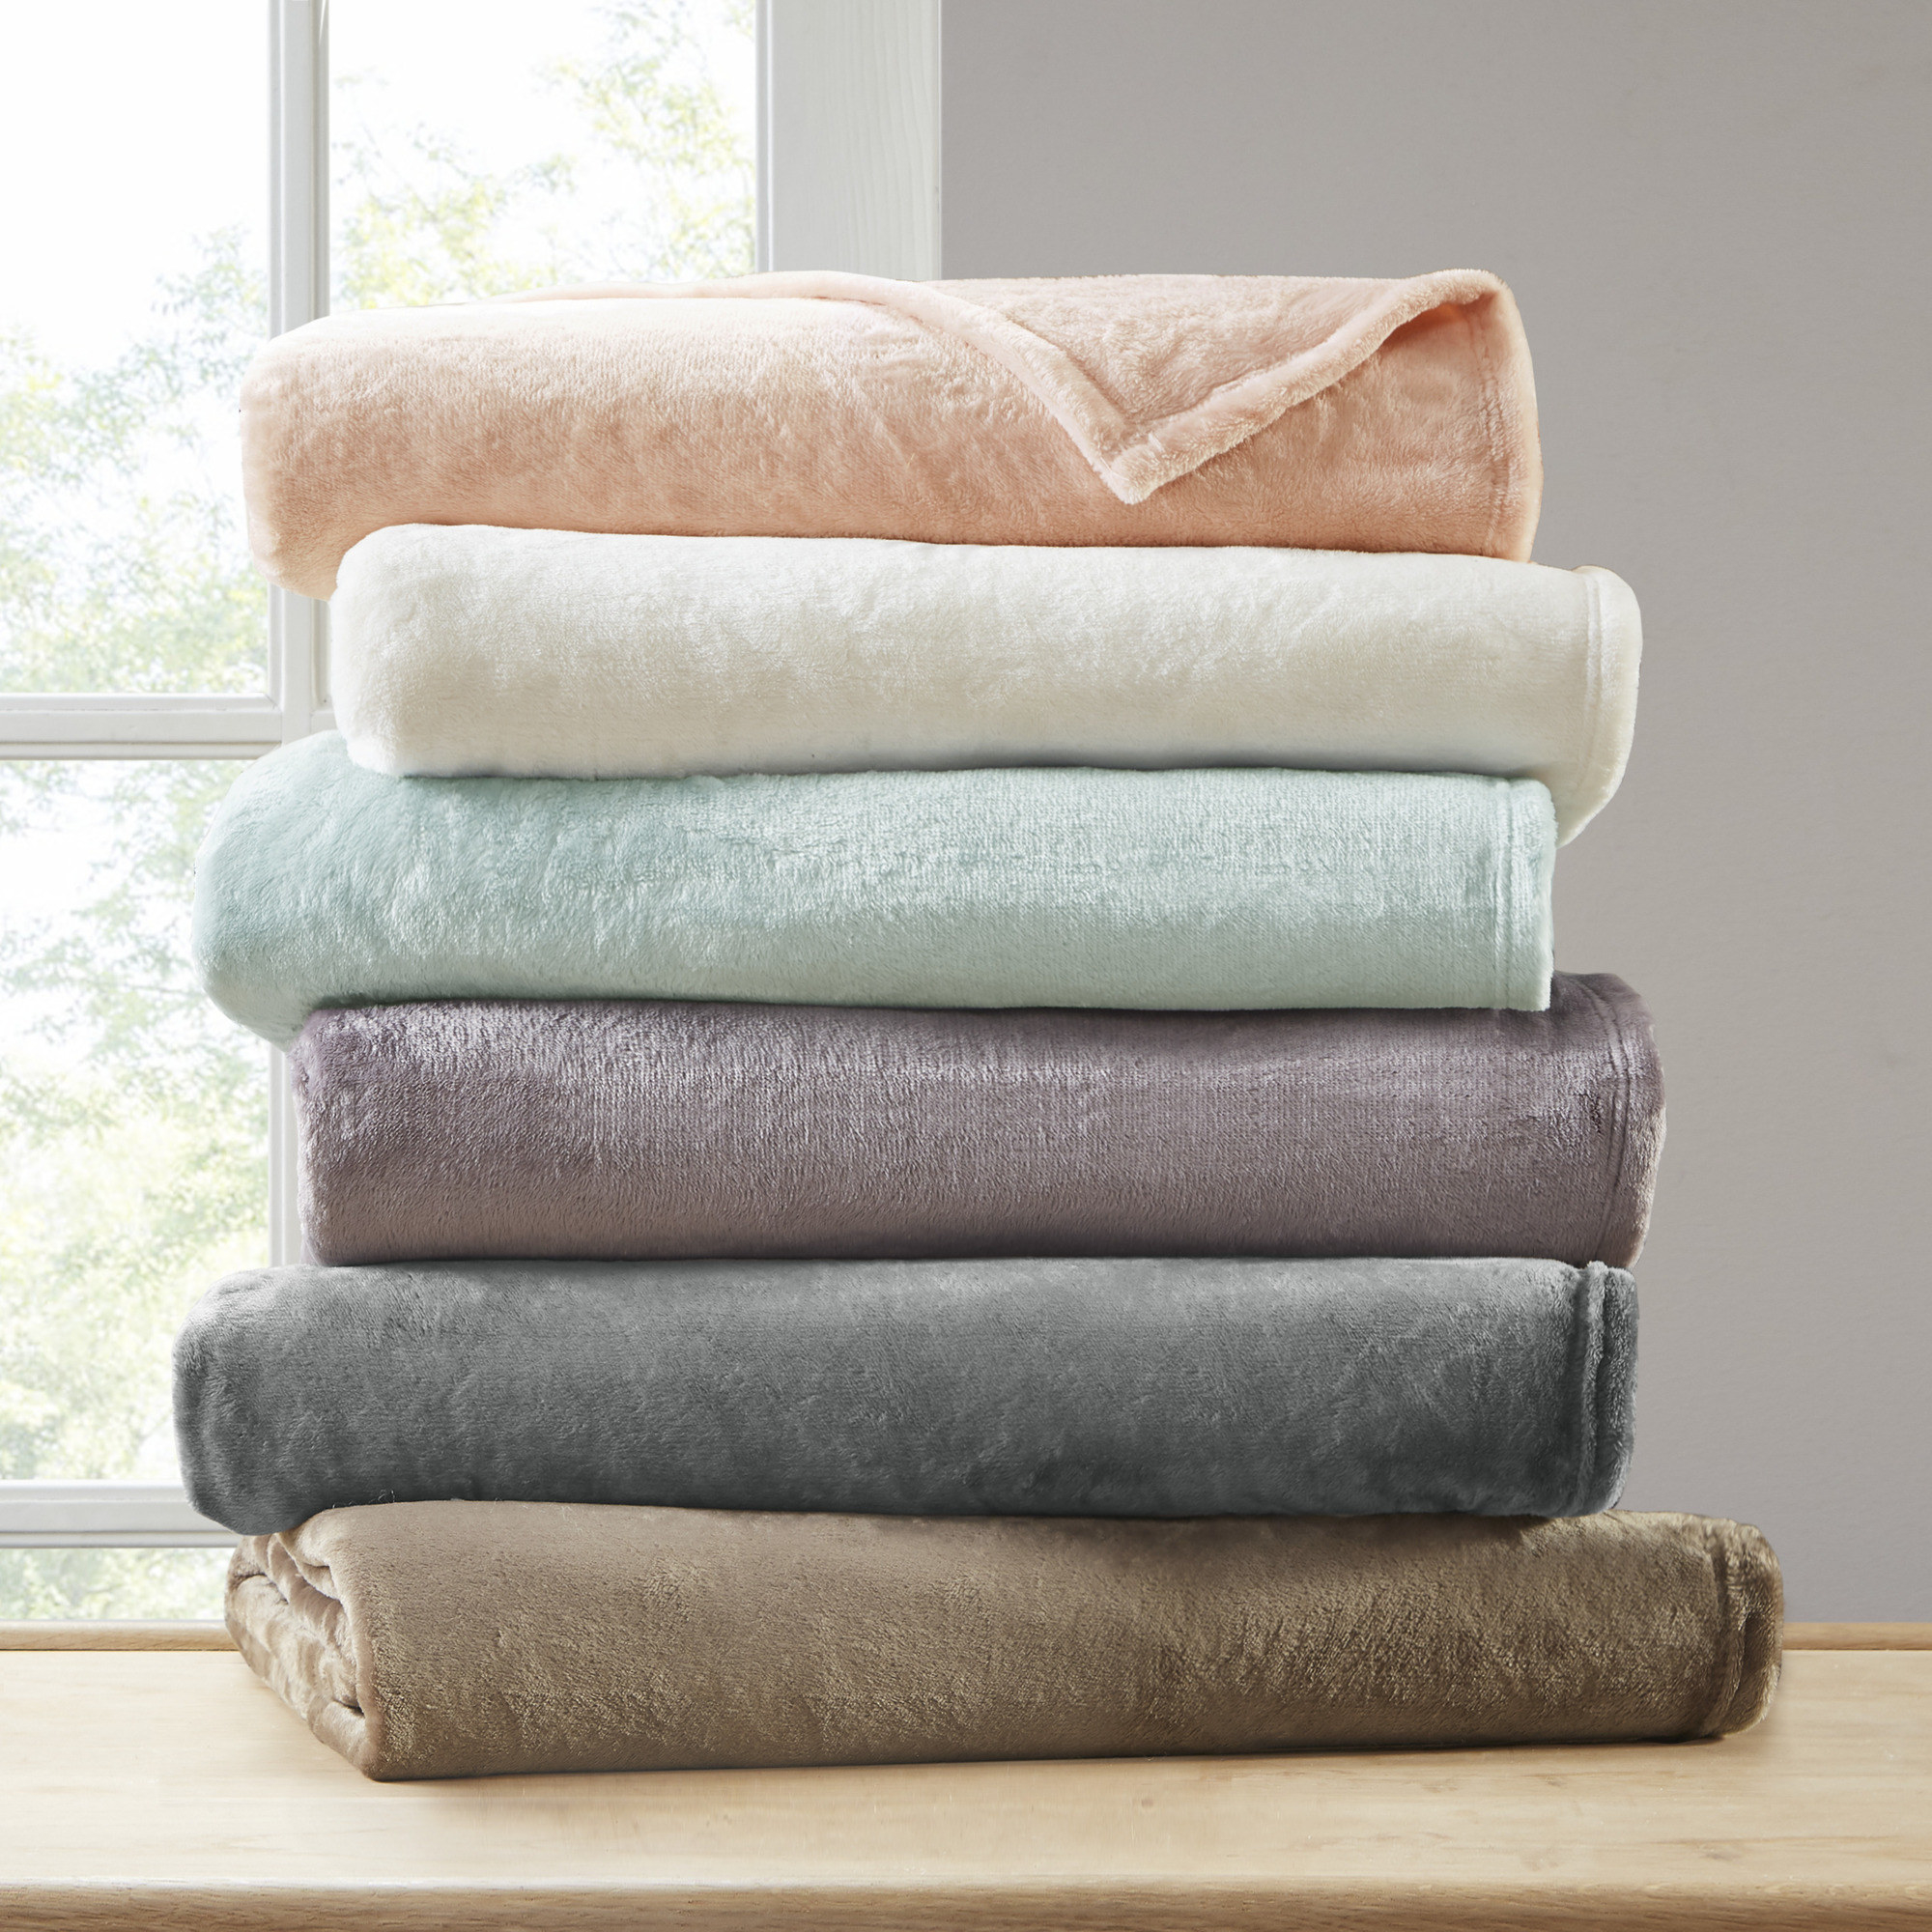 Stacked blankets in various colors